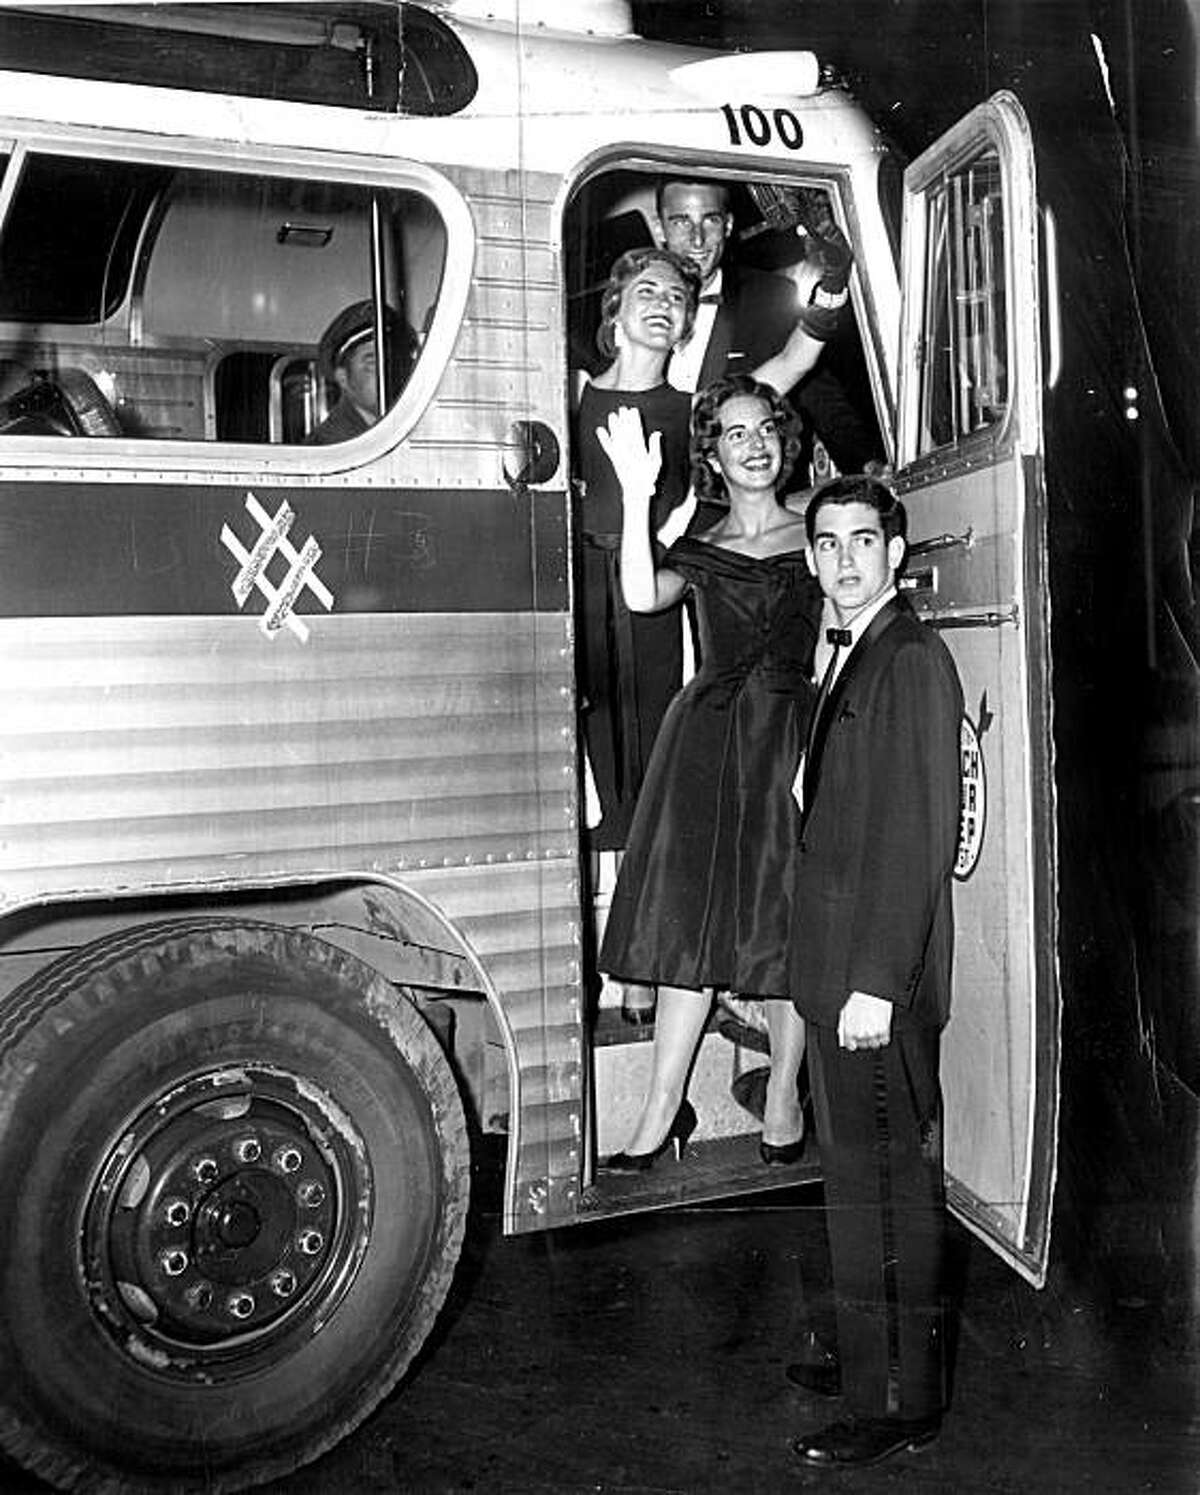 From top: Dennis Bond, Linda Schmidt, Cathy Cartan and Mike Novelli, boarding a bus at the Black and White Ball, 1959.